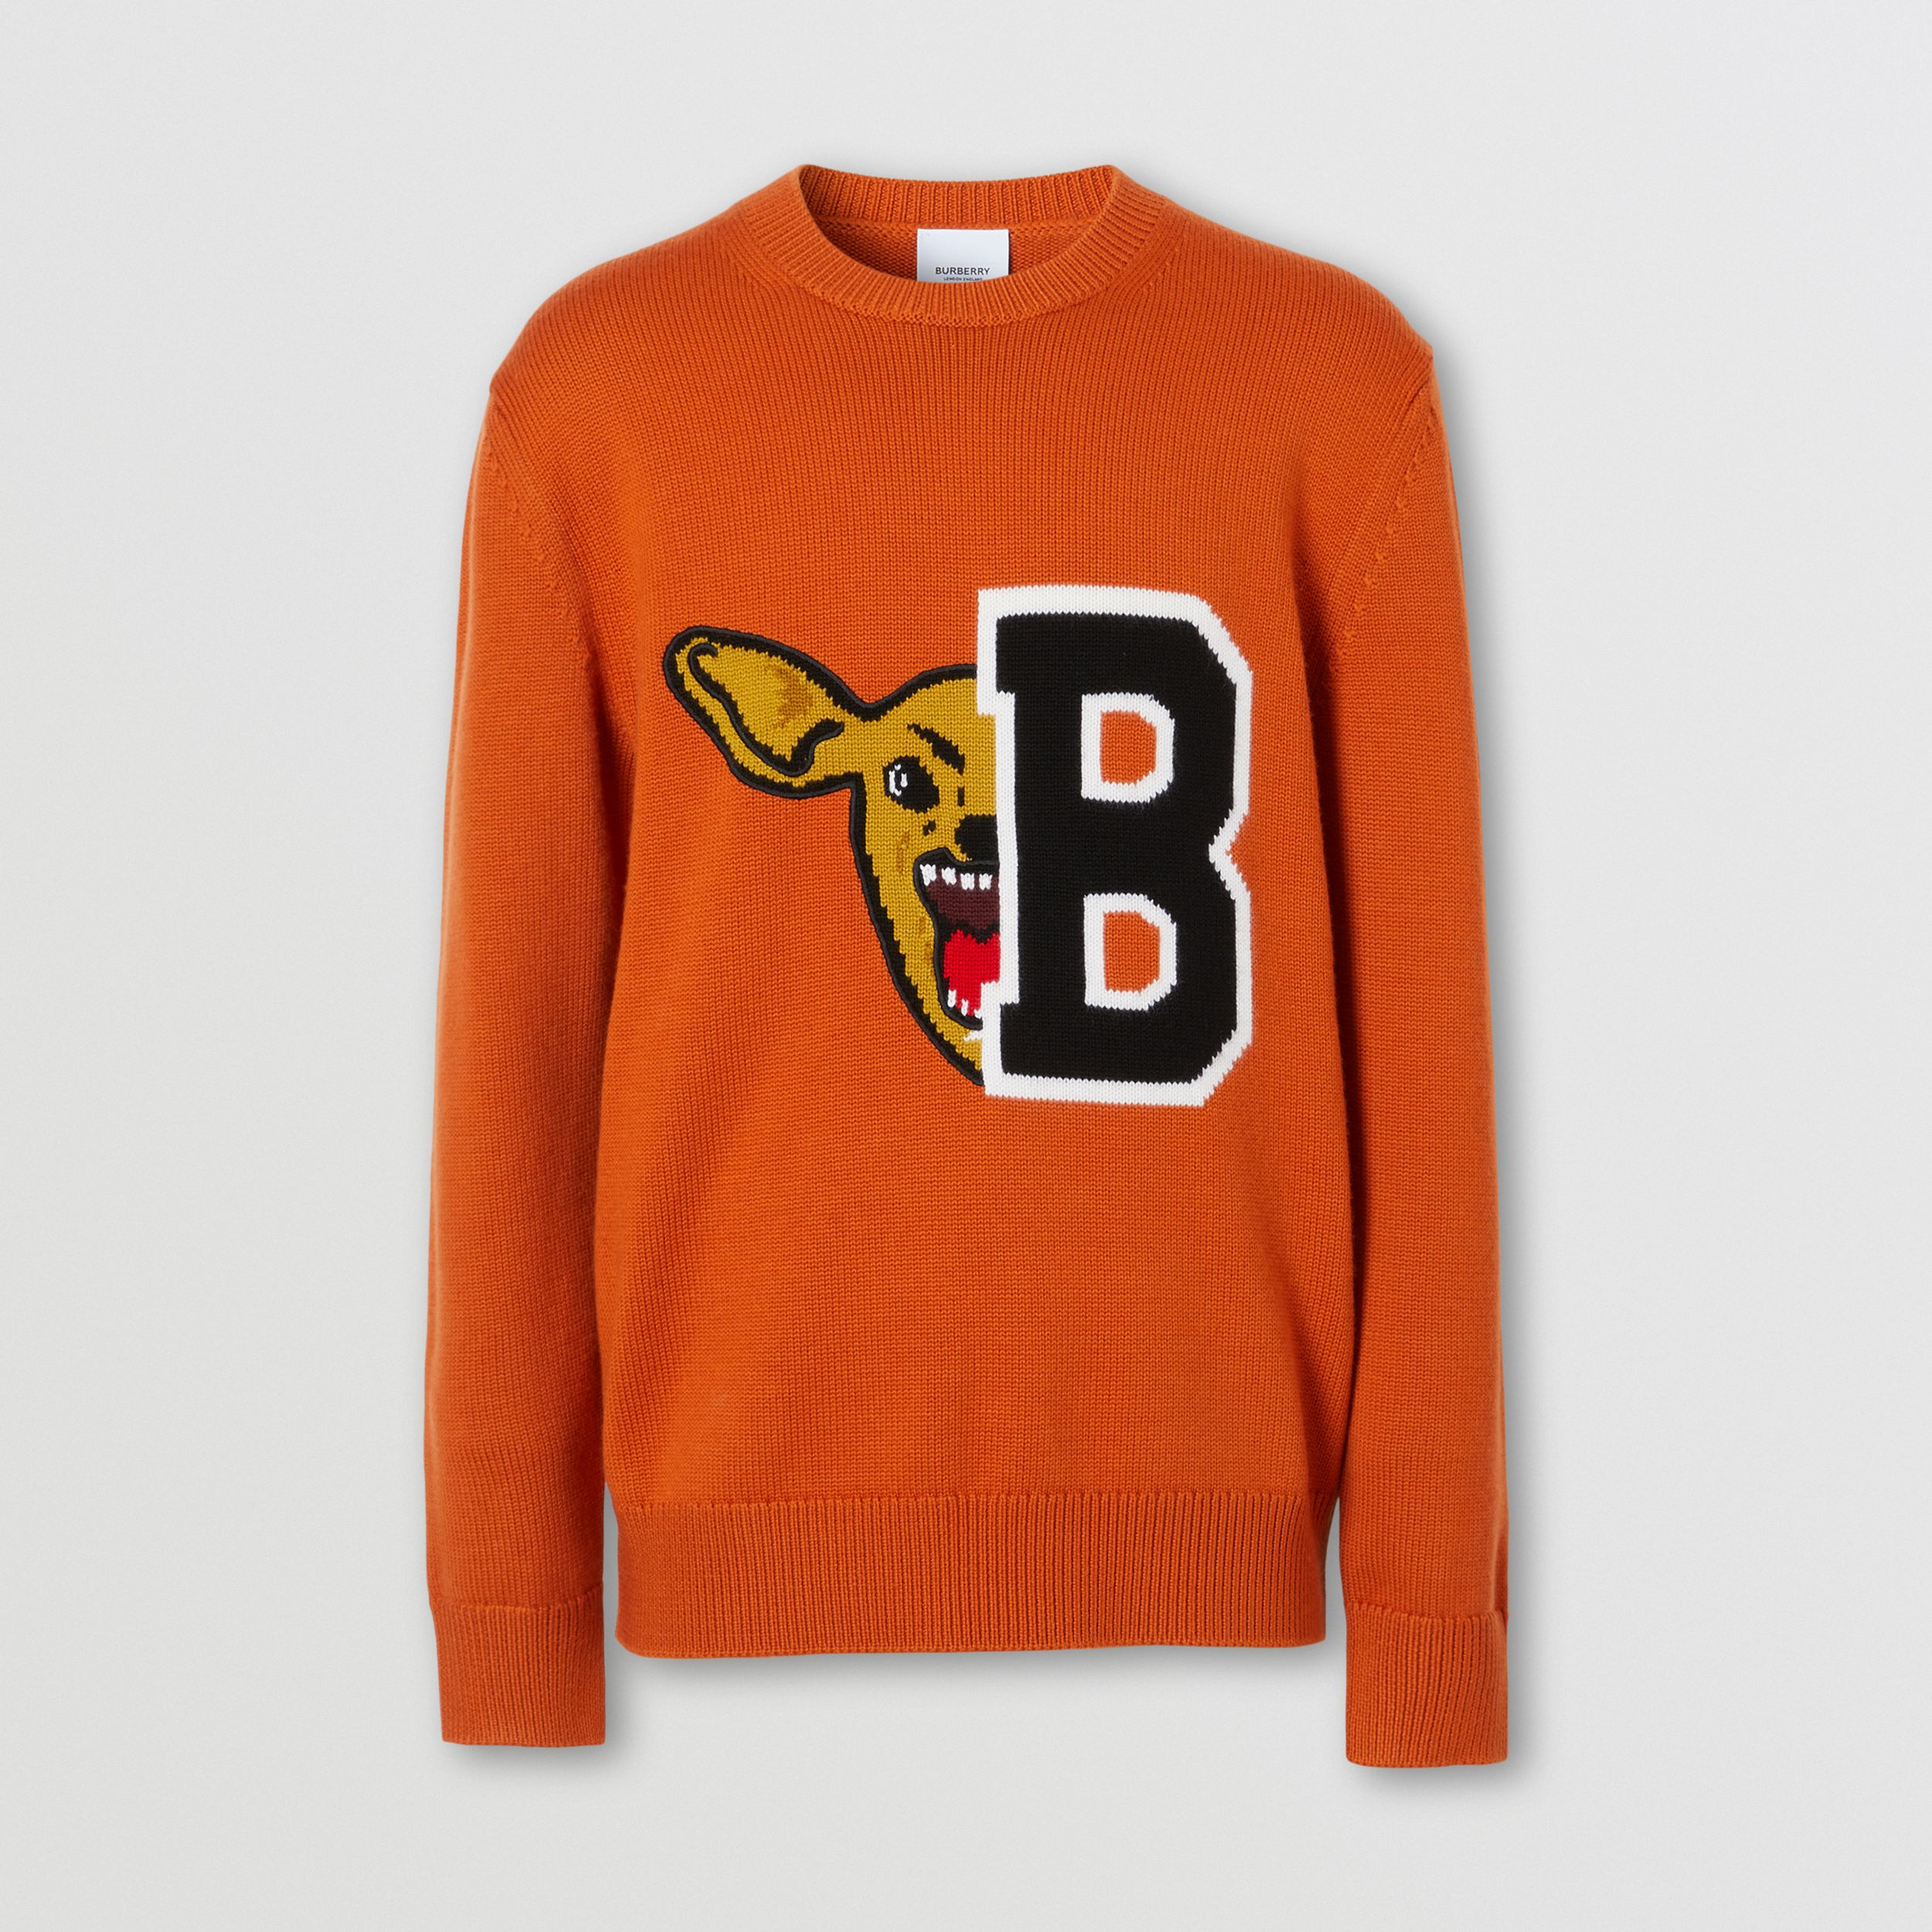 Varsity Graphic Merino Wool Jacquard Sweater in Burnt Orange - Men | Burberry - 4